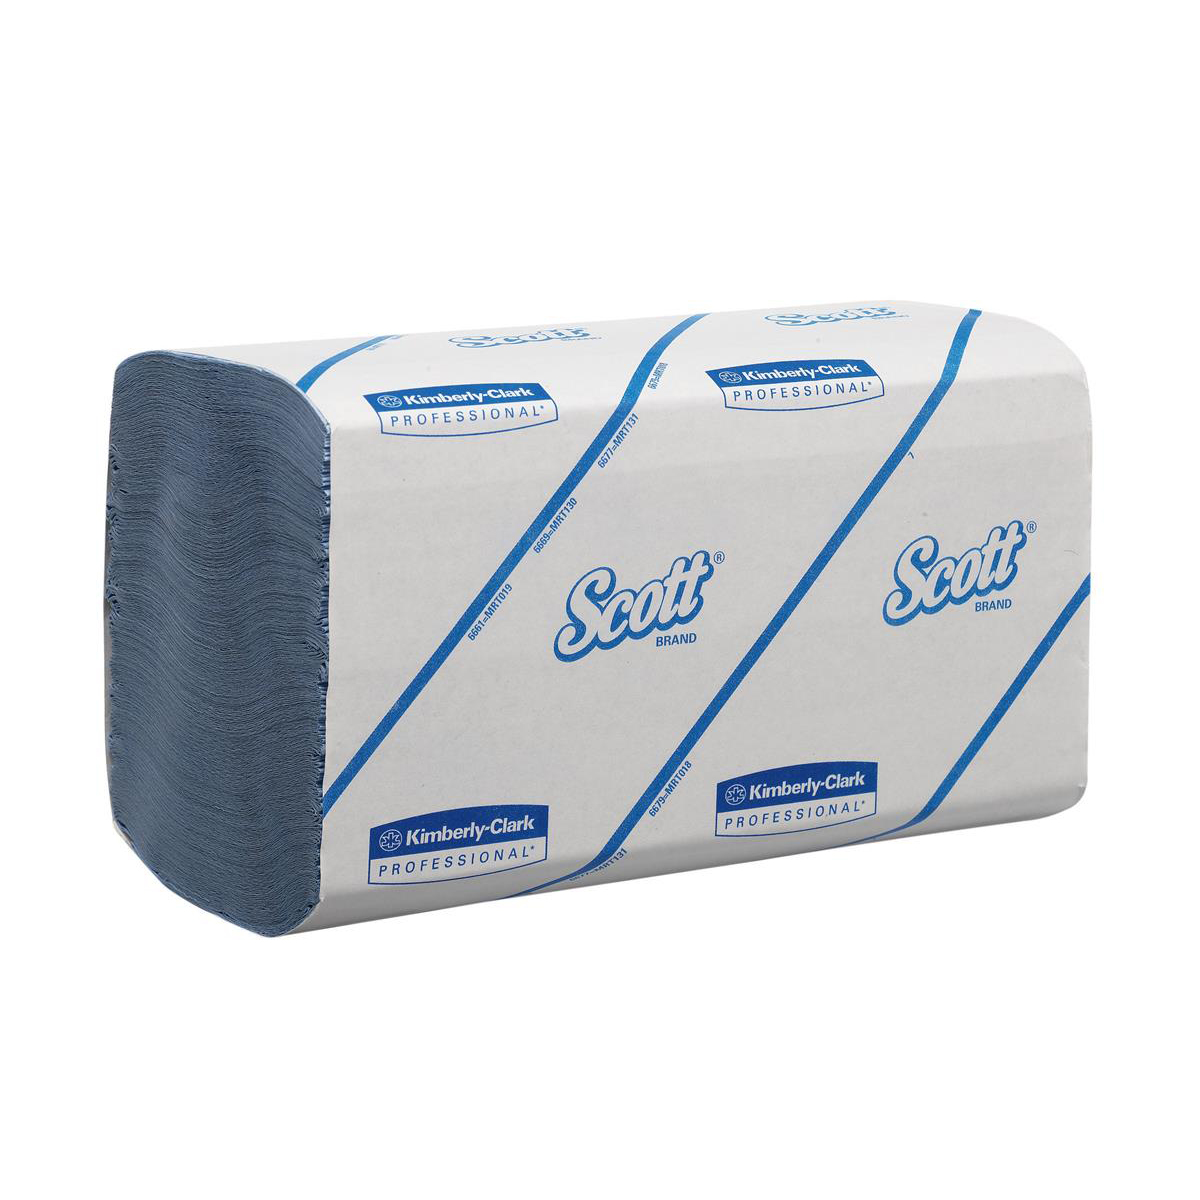 Hand Towels & Dispensers Scott Performance Hand Towels Blue 1 Ply 315x215mm 212 Towels per Sleeve Ref 6664 Pack 15 Sleeves